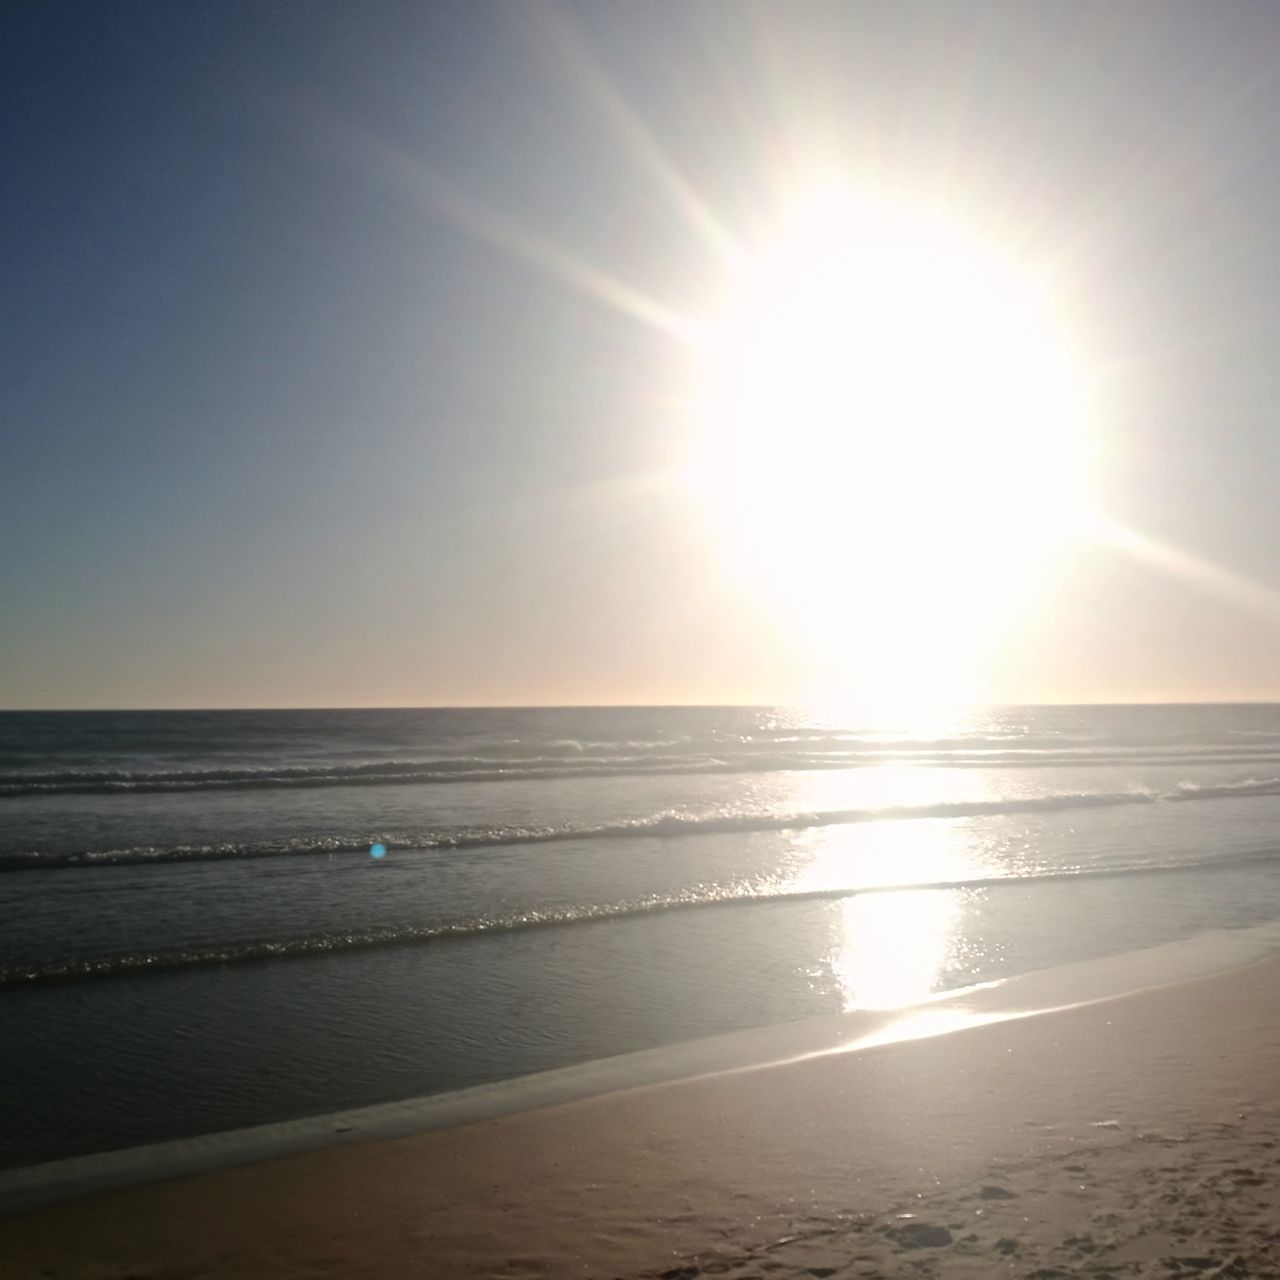 sea, sun, beach, sunbeam, beauty in nature, scenics, sunlight, nature, horizon over water, water, lens flare, tranquility, tranquil scene, bright, sand, idyllic, shore, sky, outdoors, sunset, brightly lit, no people, clear sky, day